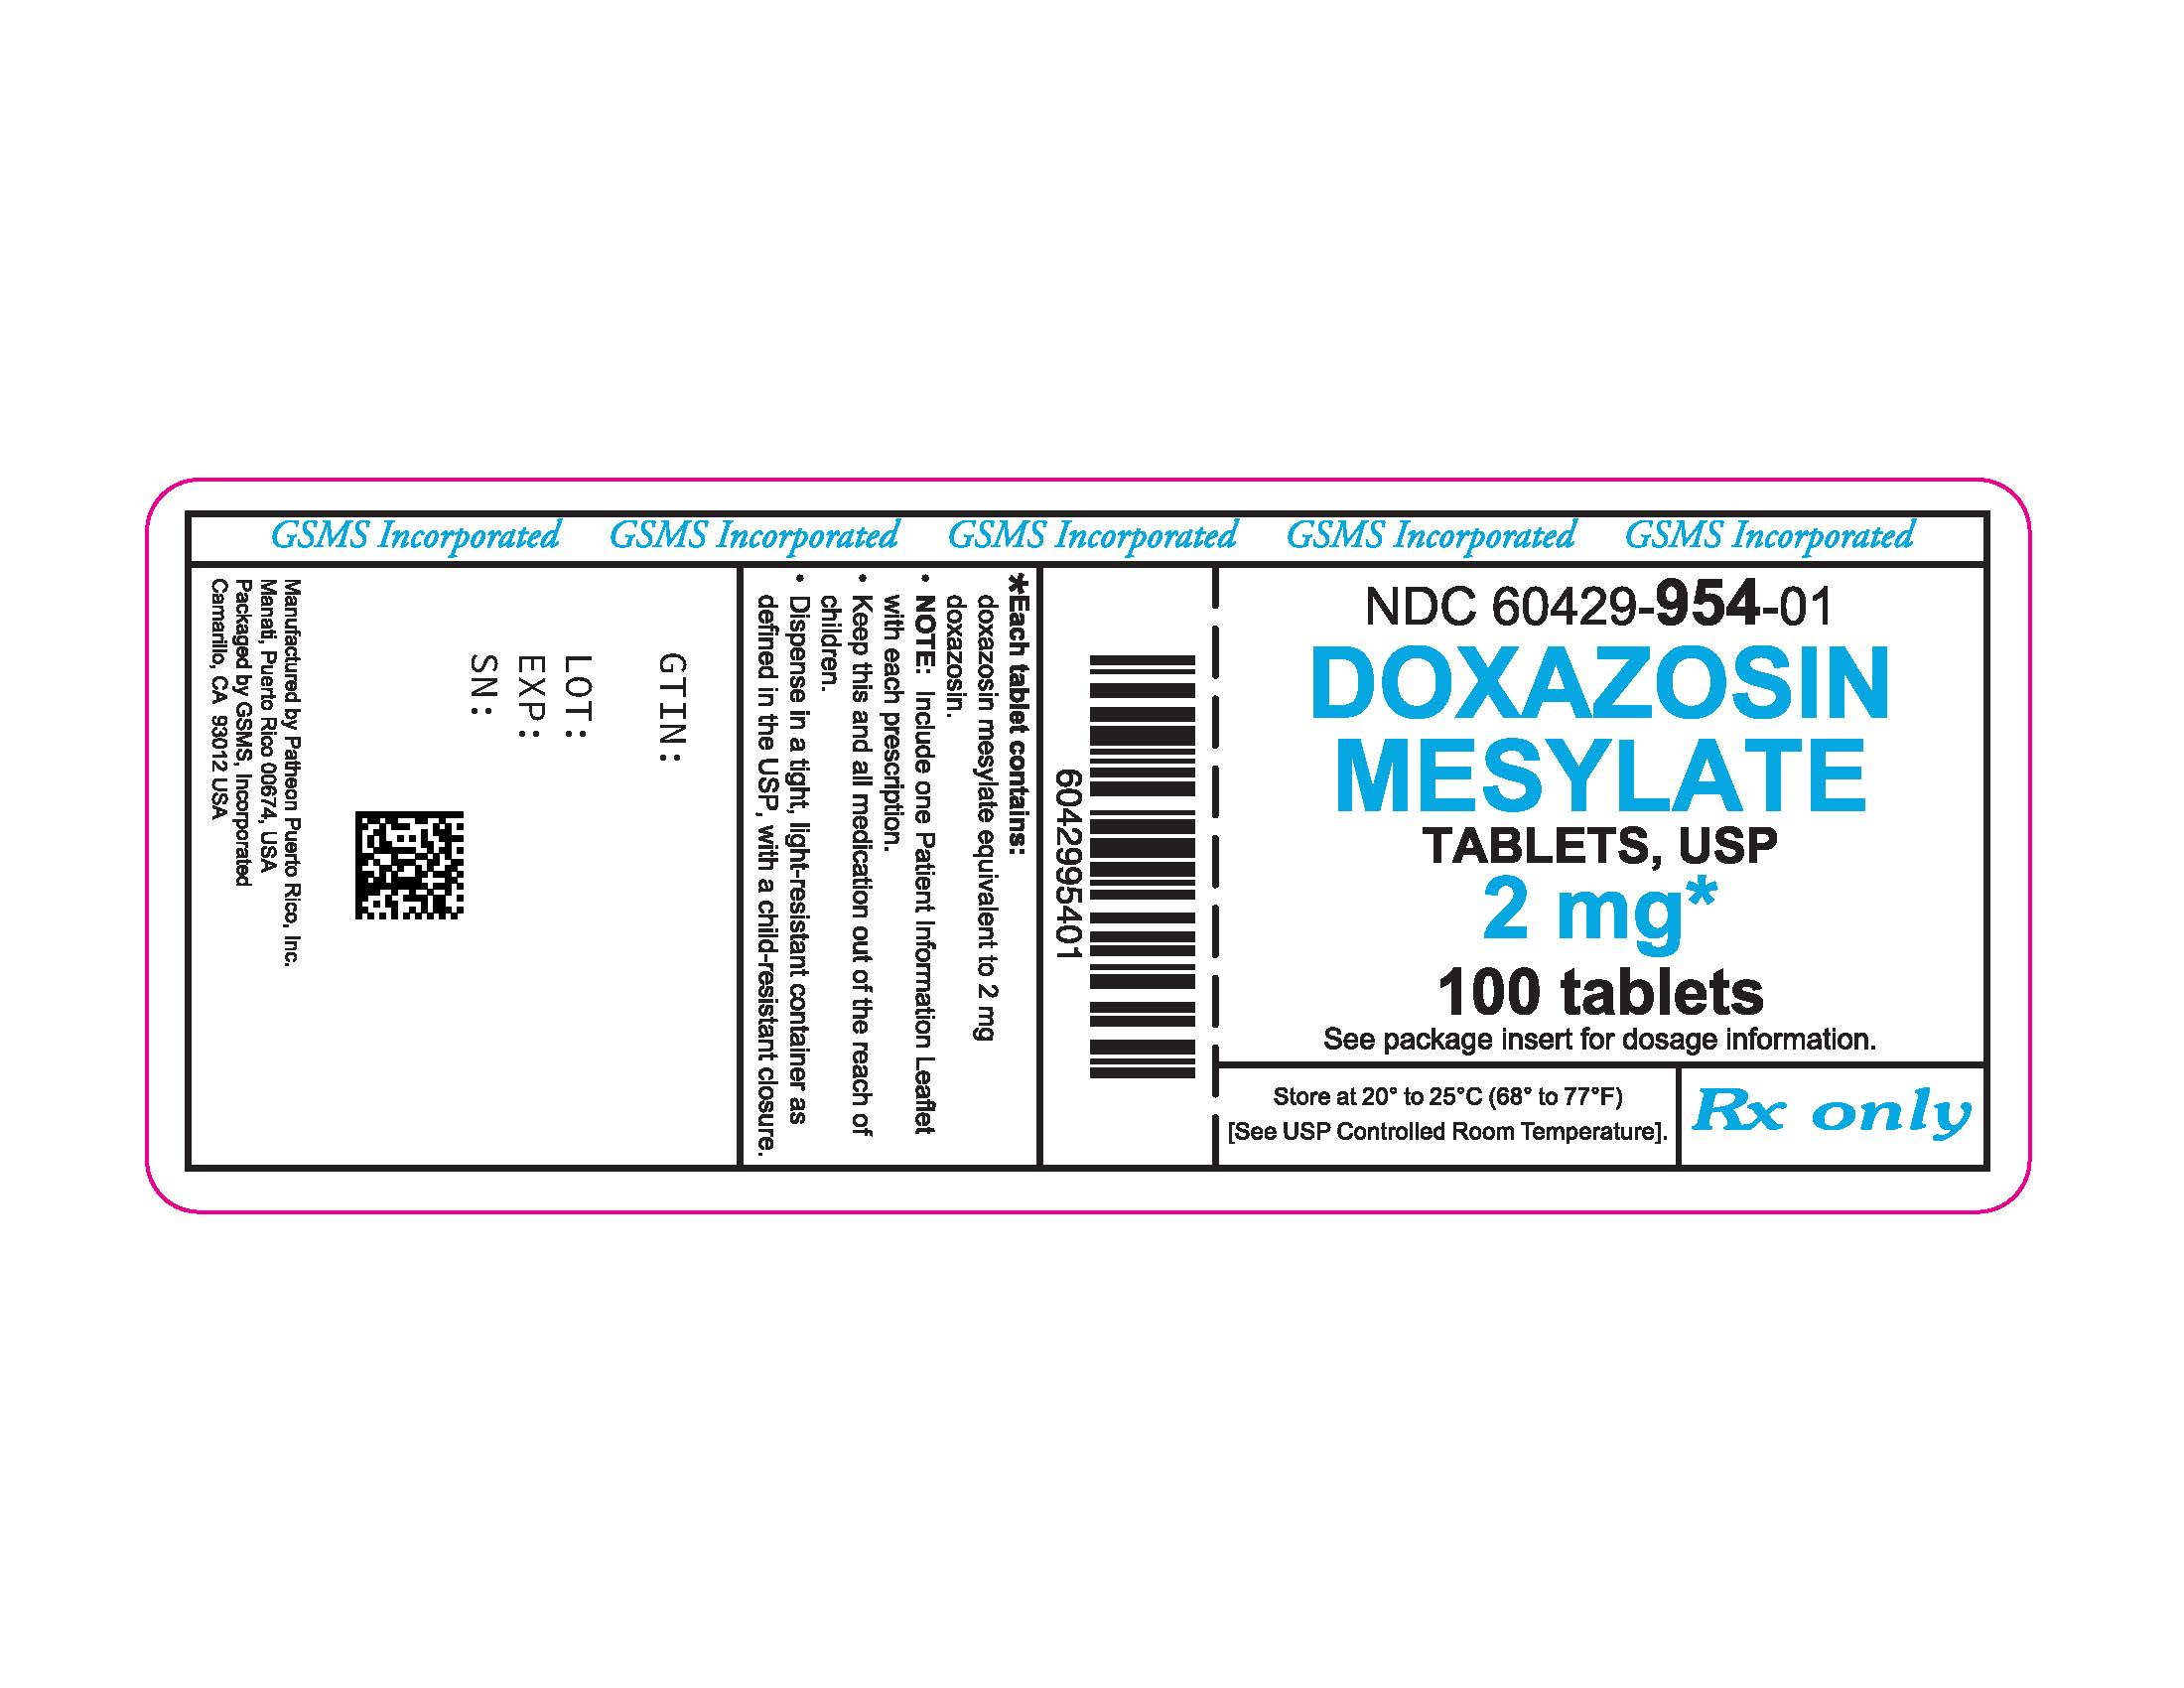 60429-954-01LB - DOXAZOSIN MESYLATE 2 MG TABS - REV JUN 2016 PMG JUN 2016.jpg